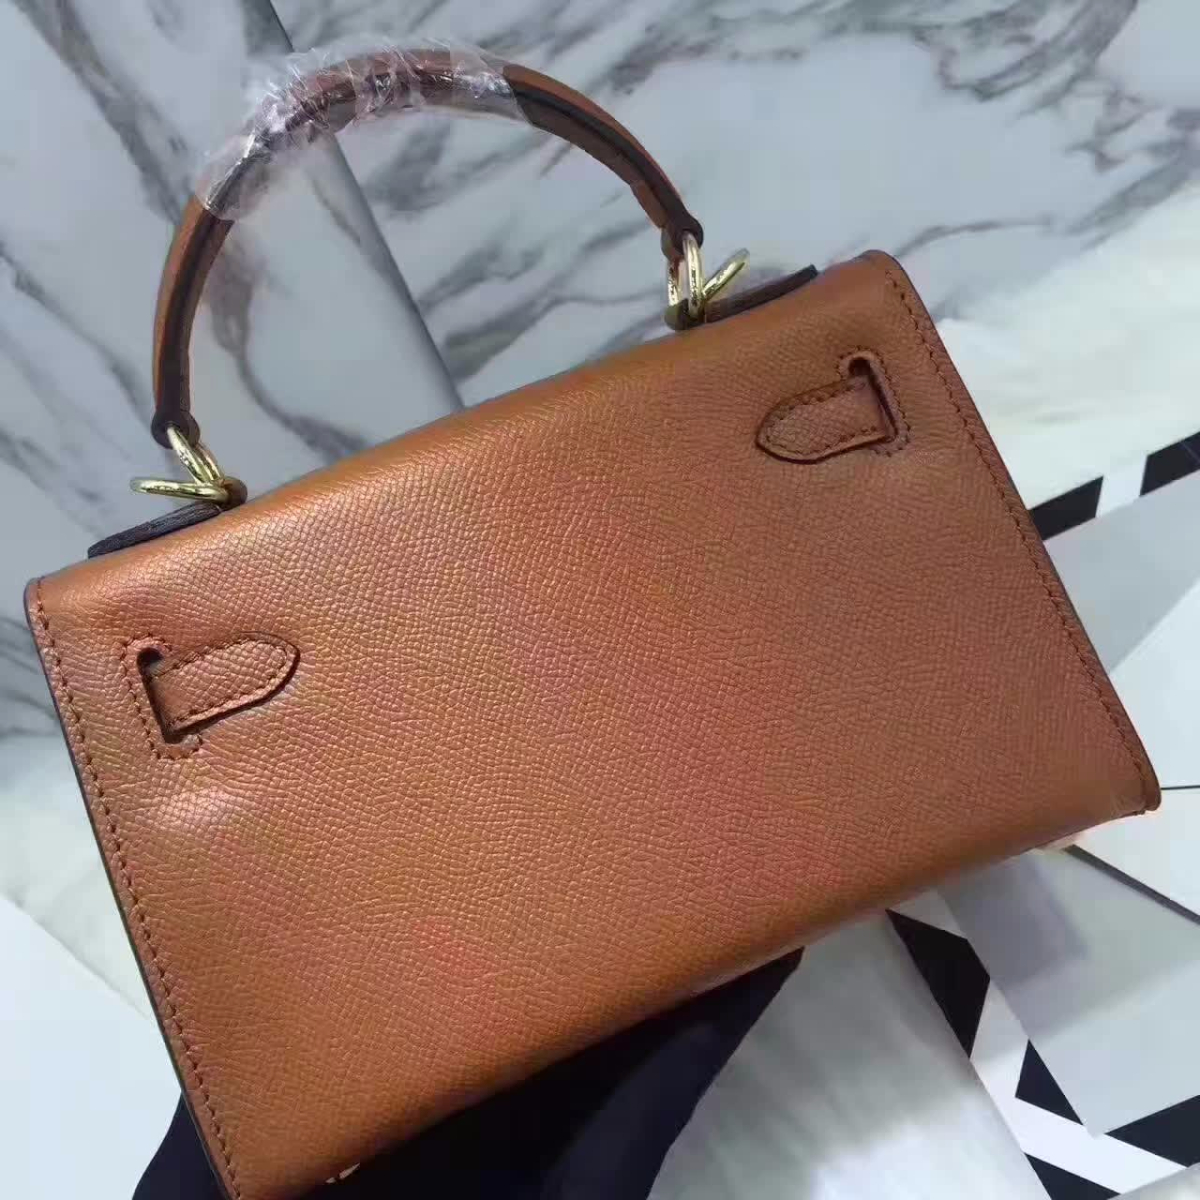 Hermes Mini Kelly Bag hhem588_1